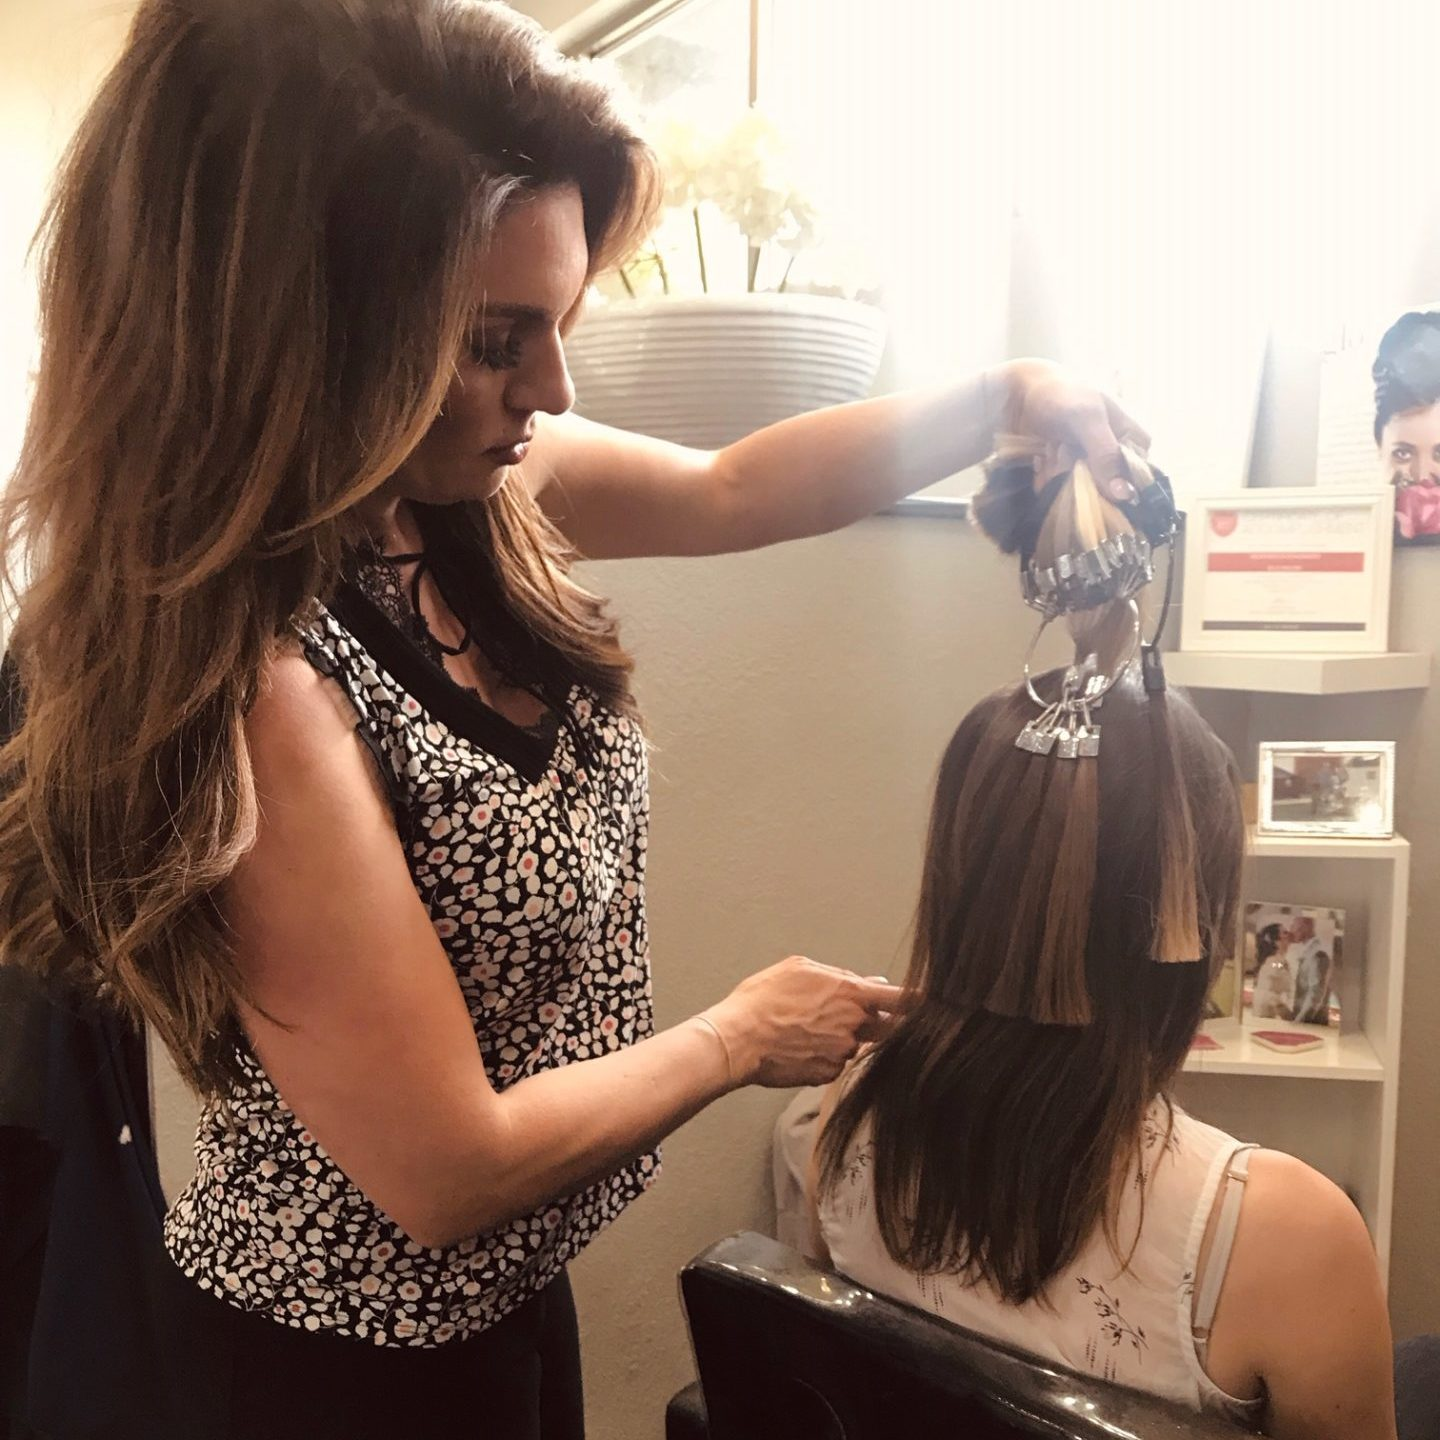 hair extensions consultation at Glo salon denver